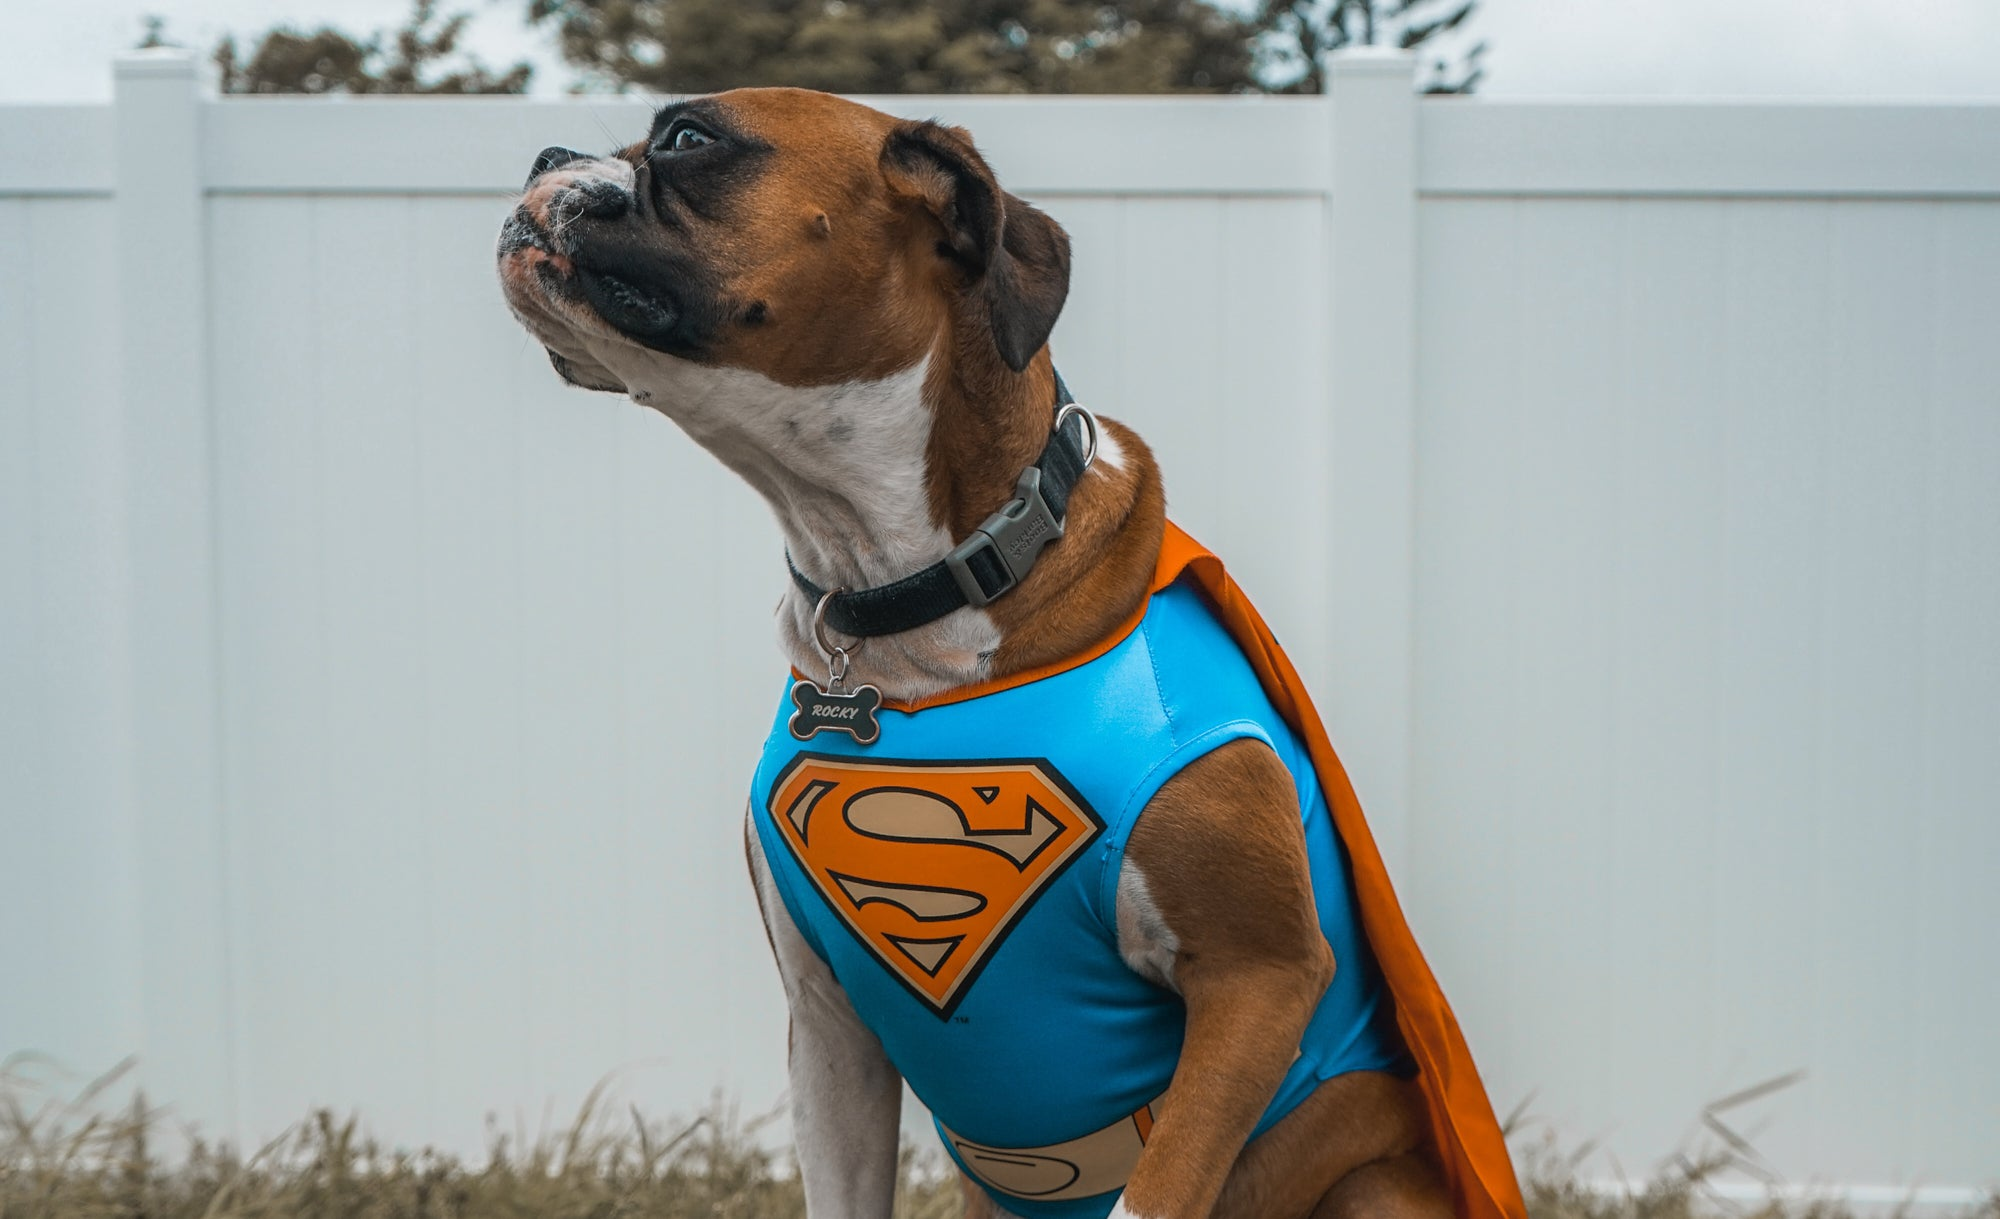 Boxer in Superman outfit